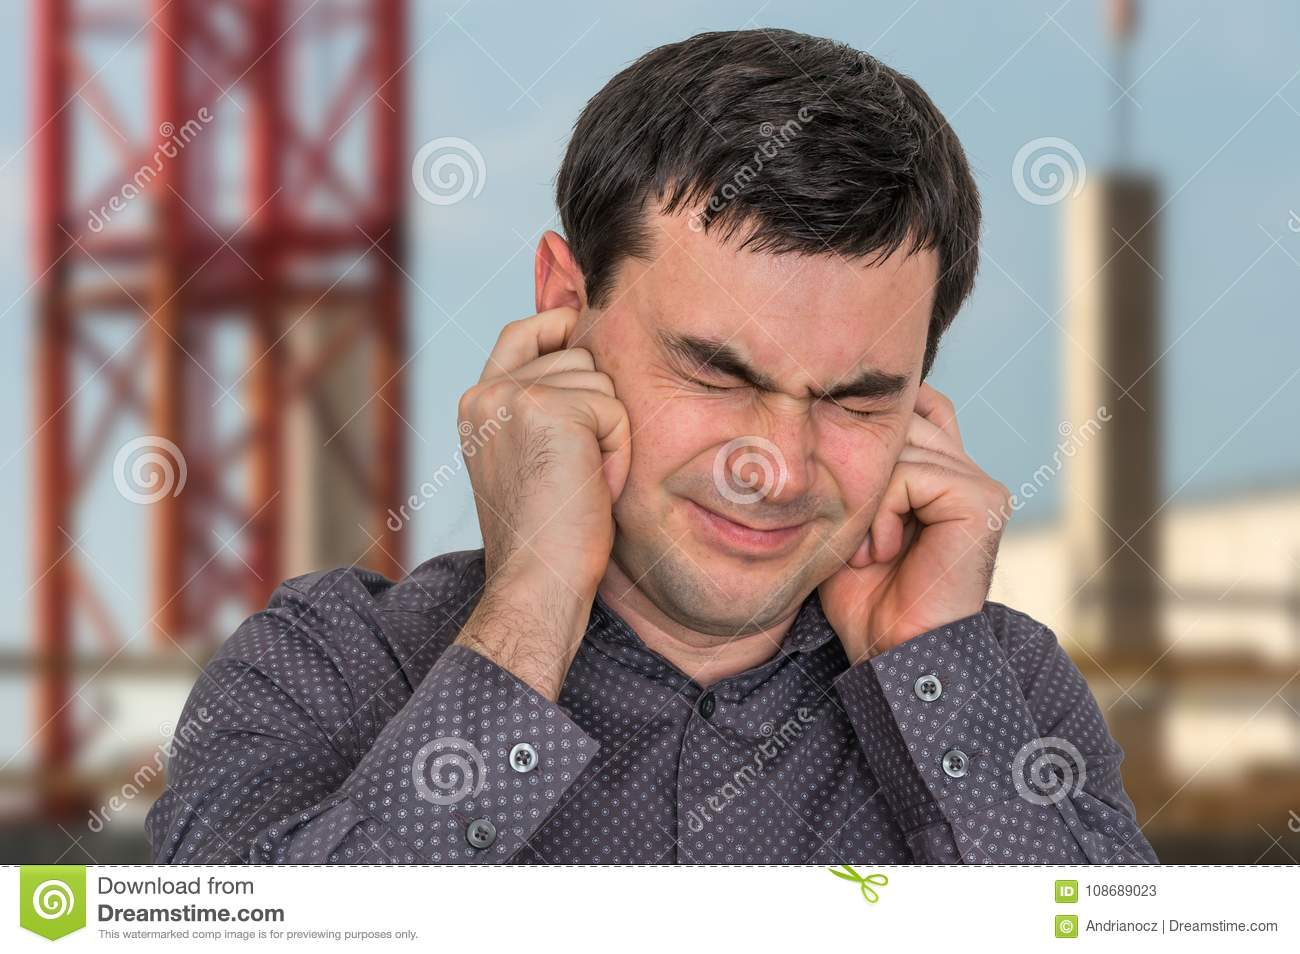 Man covering his ears to protect from loud noise